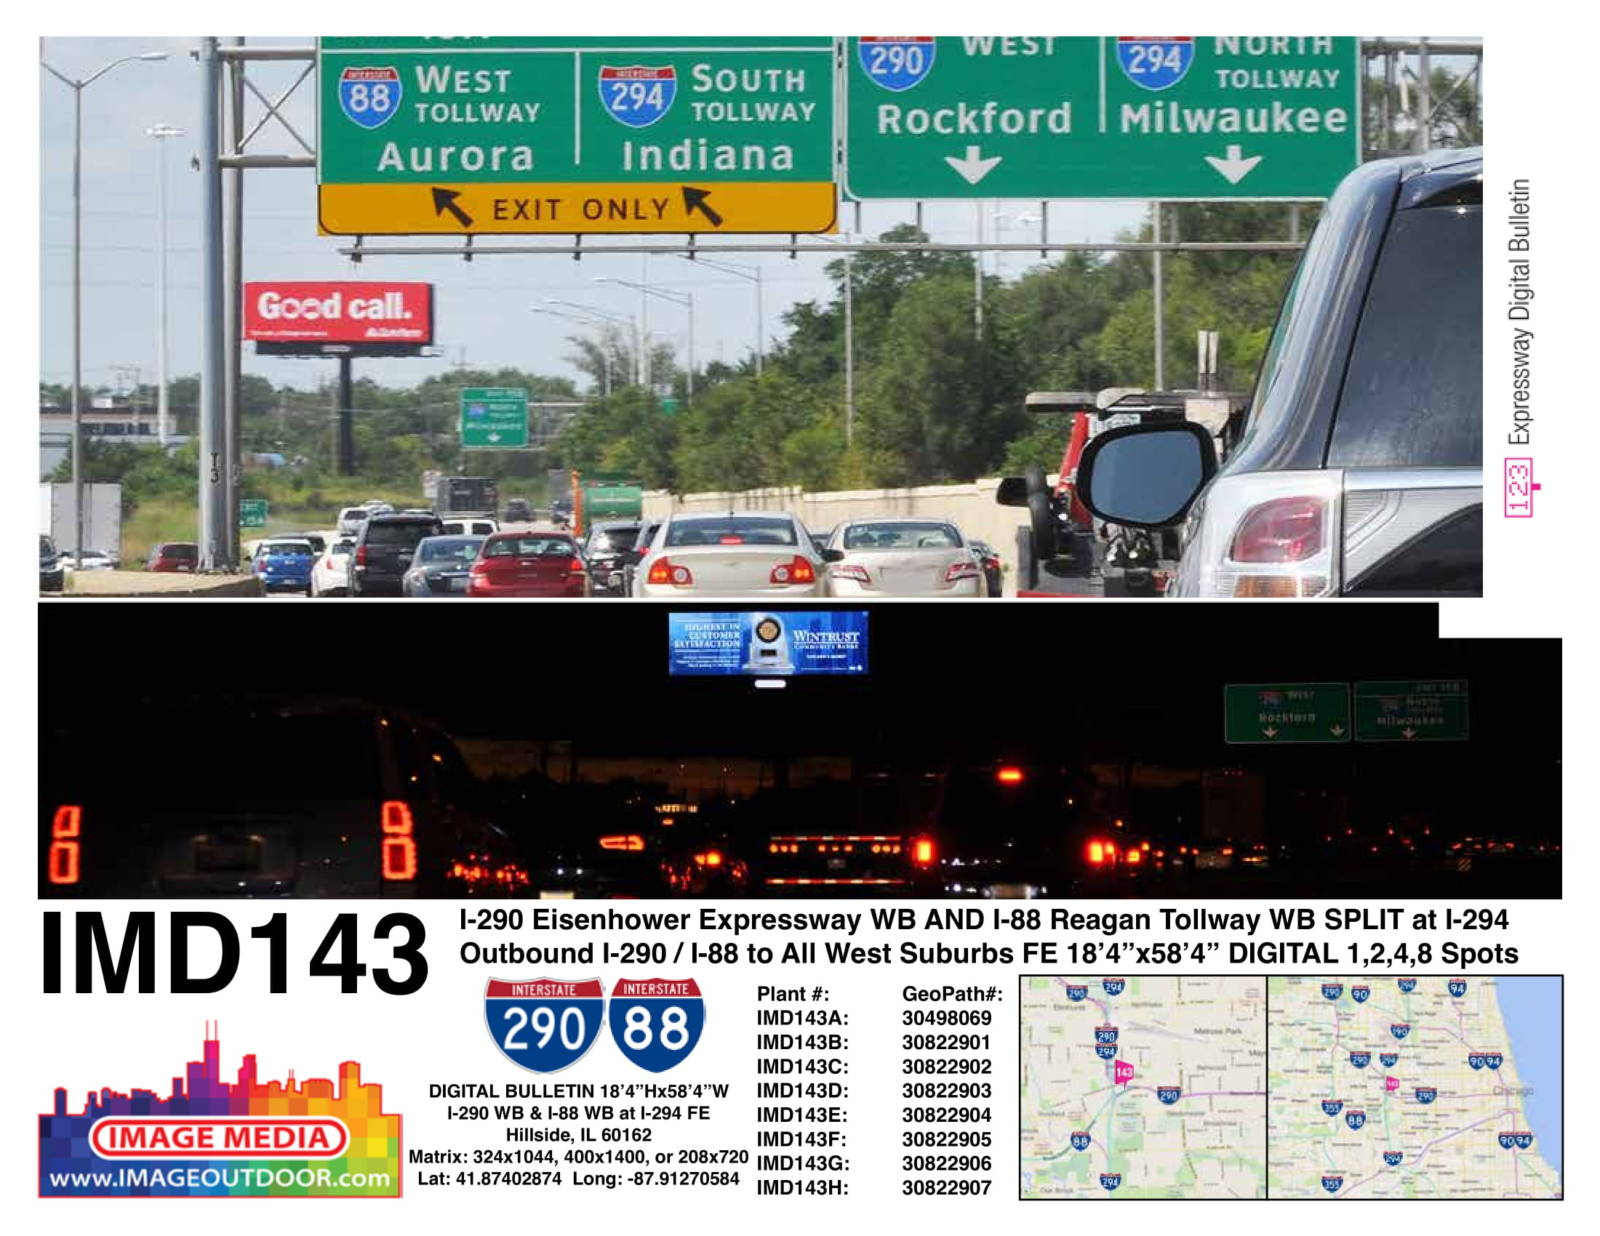 IMD143 - billboard at I-290 Eisenhower westbound and I-88 Reagan tollway westbound split